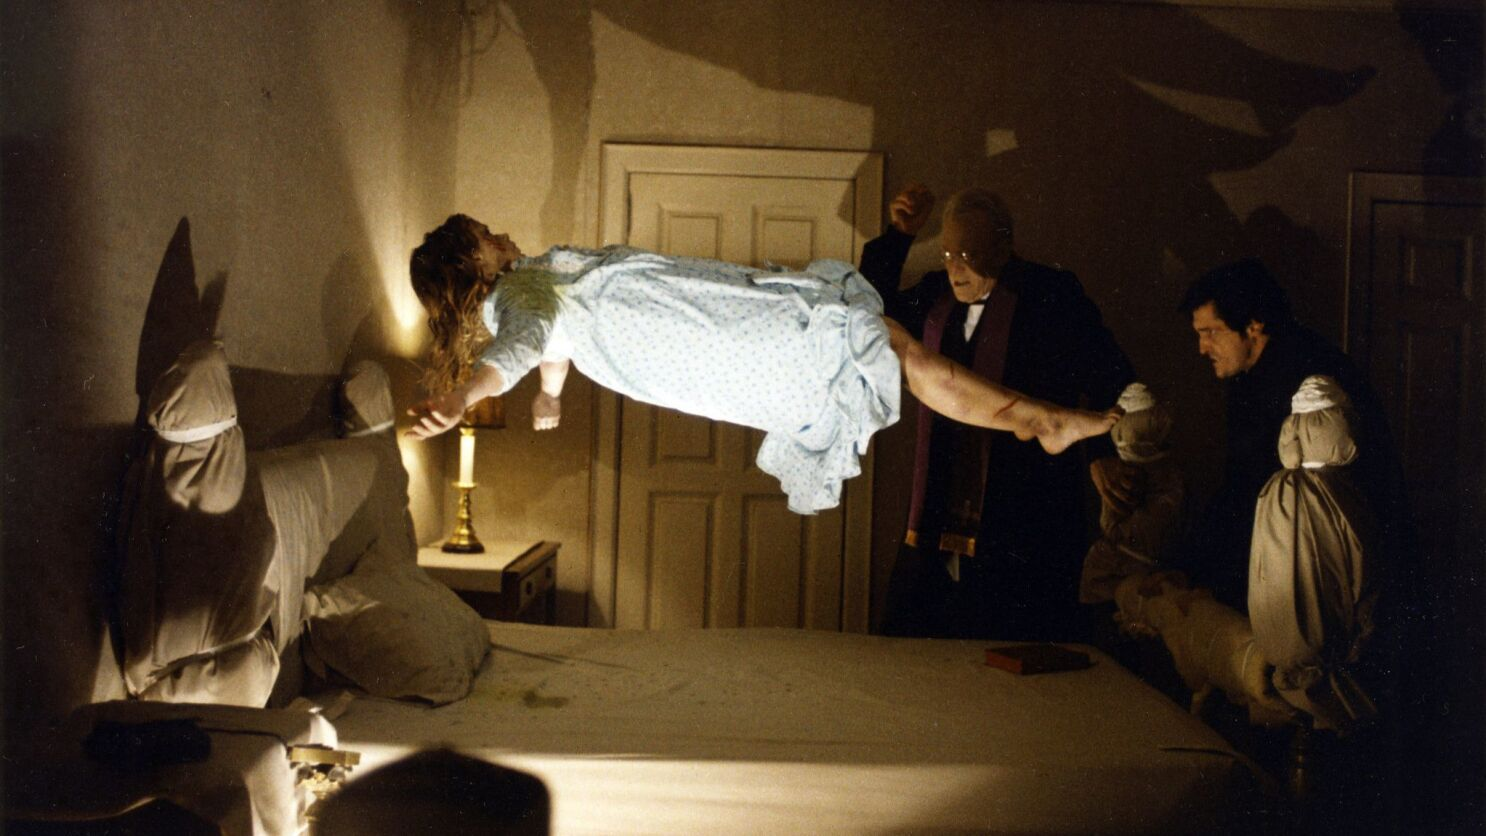 Classic Hollywood: This will turn your head around: `The Exorcist' turns 45  this month - Los Angeles Times